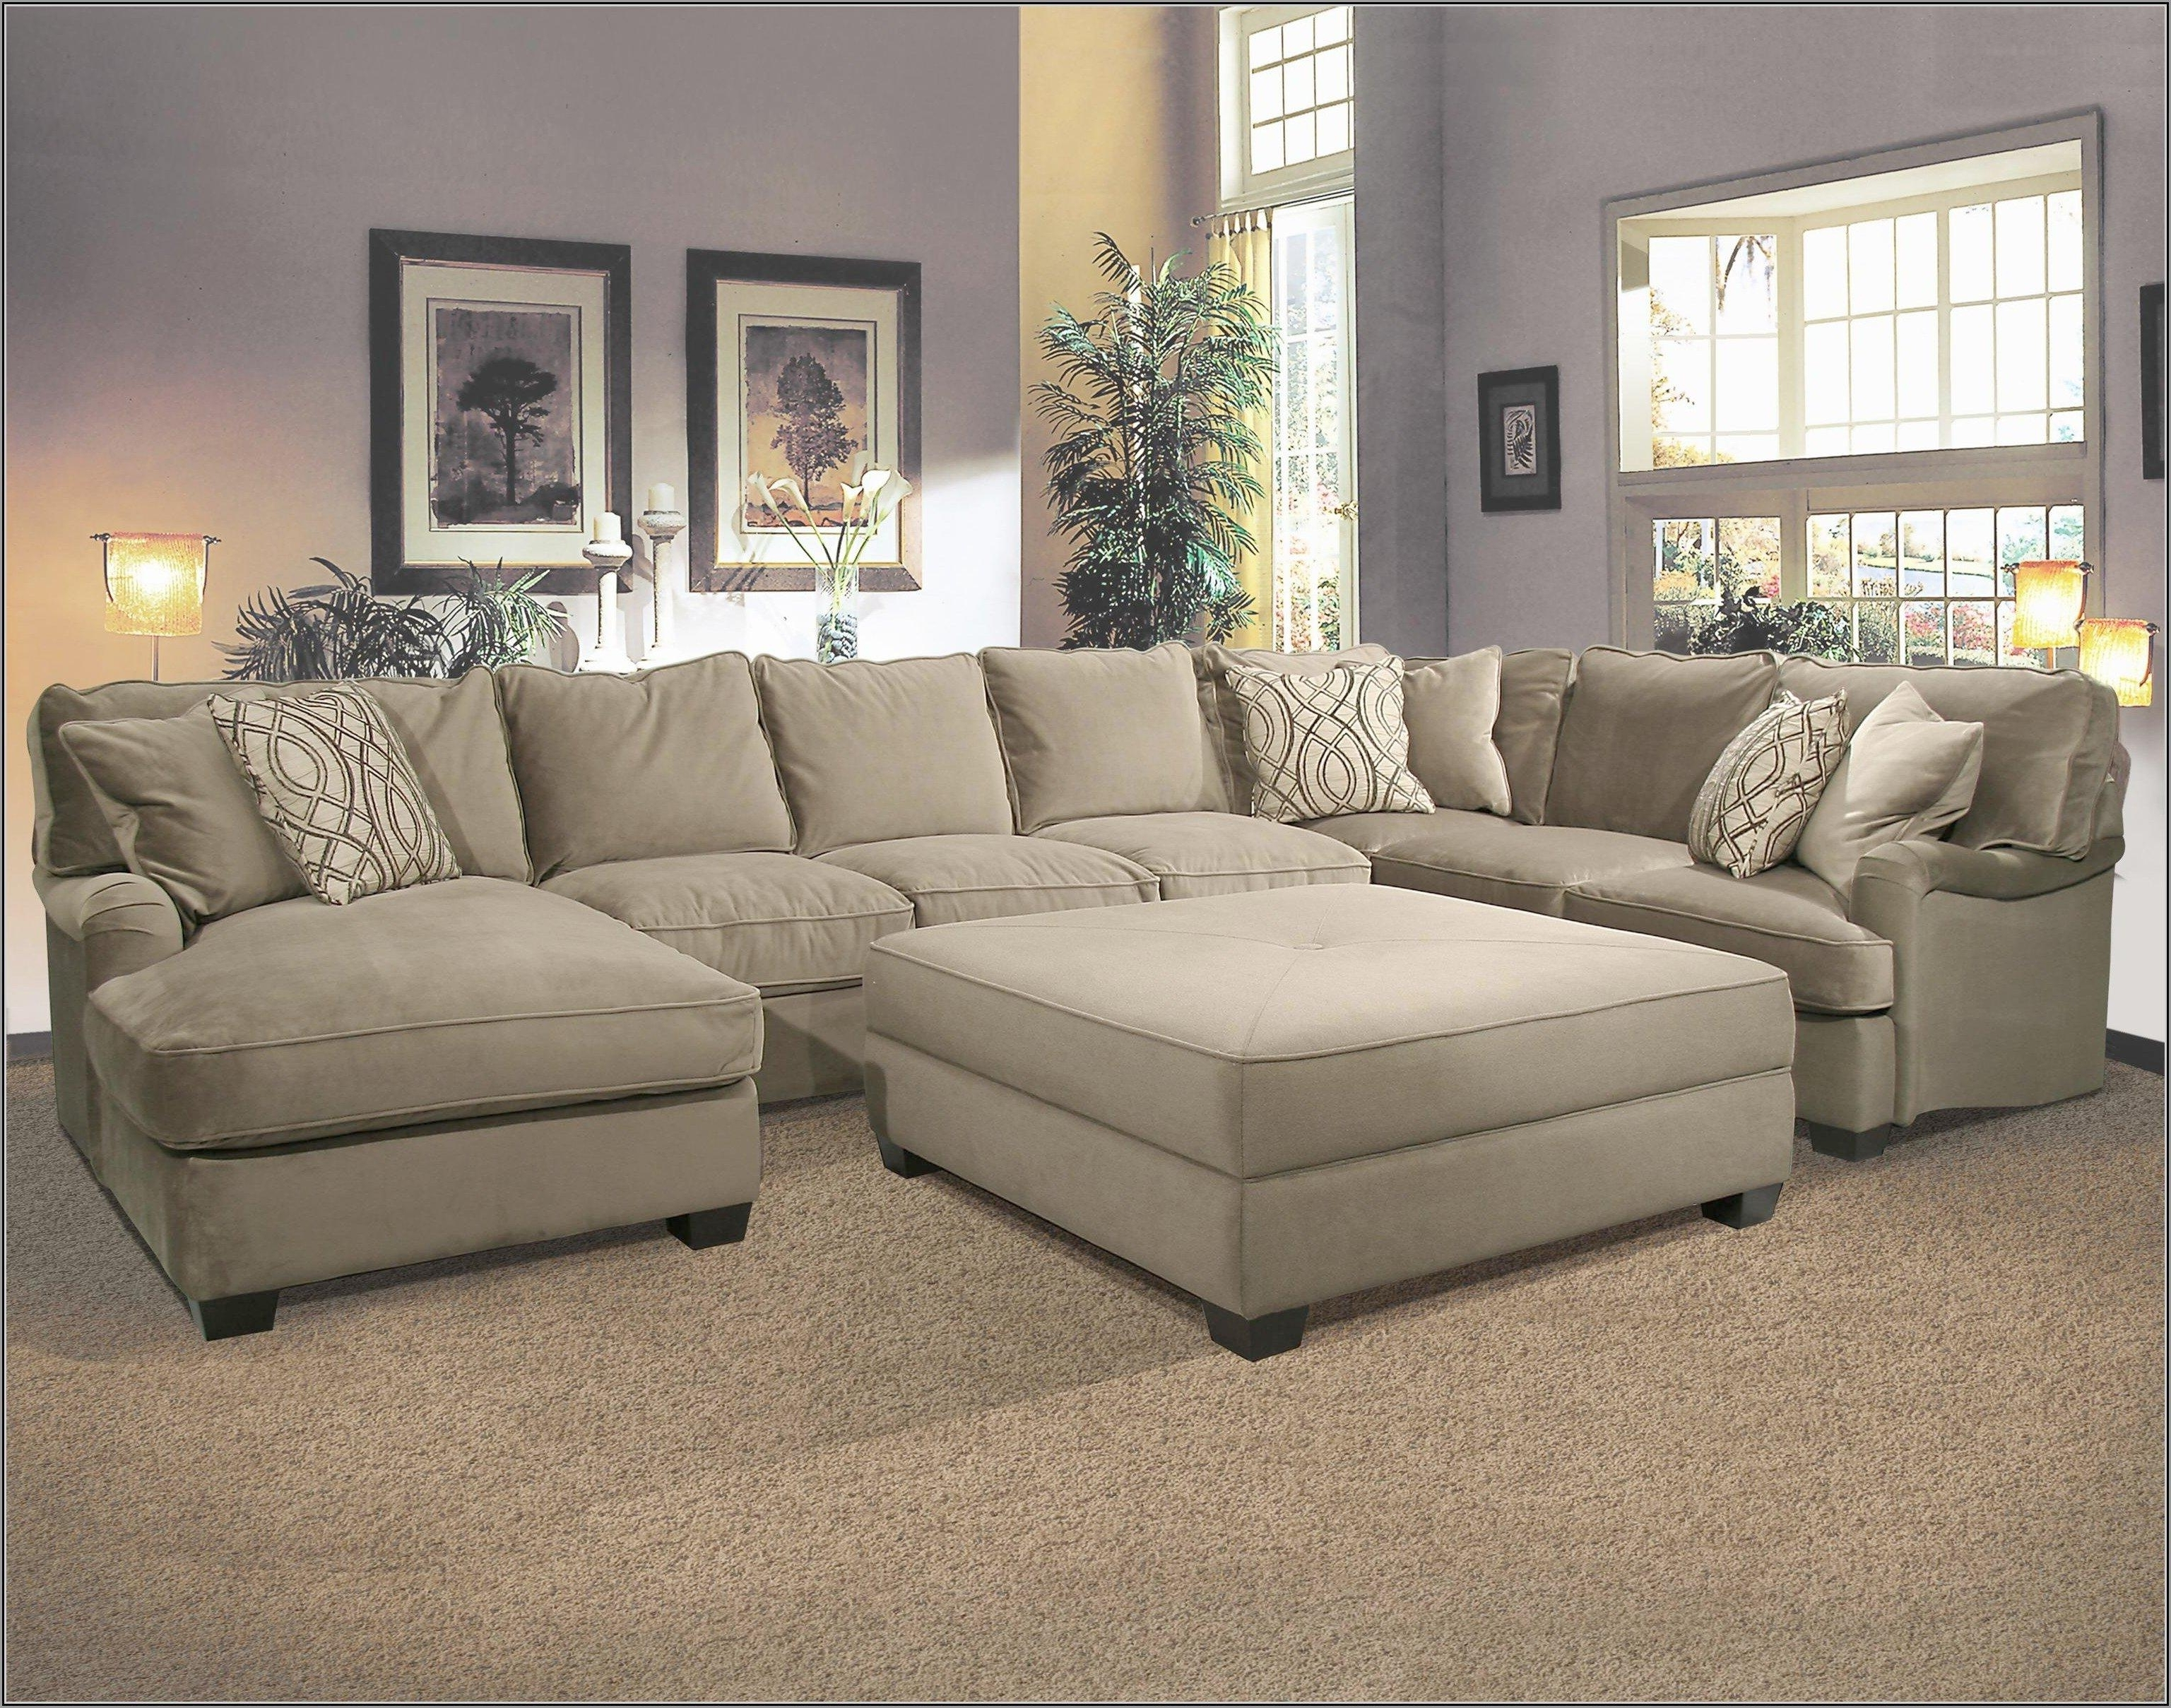 Sofa : Deep Seated Sectional New Sectional Sofa With Ottoman Deep With Most Current Leather Sectional Sofas With Ottoman (View 18 of 20)